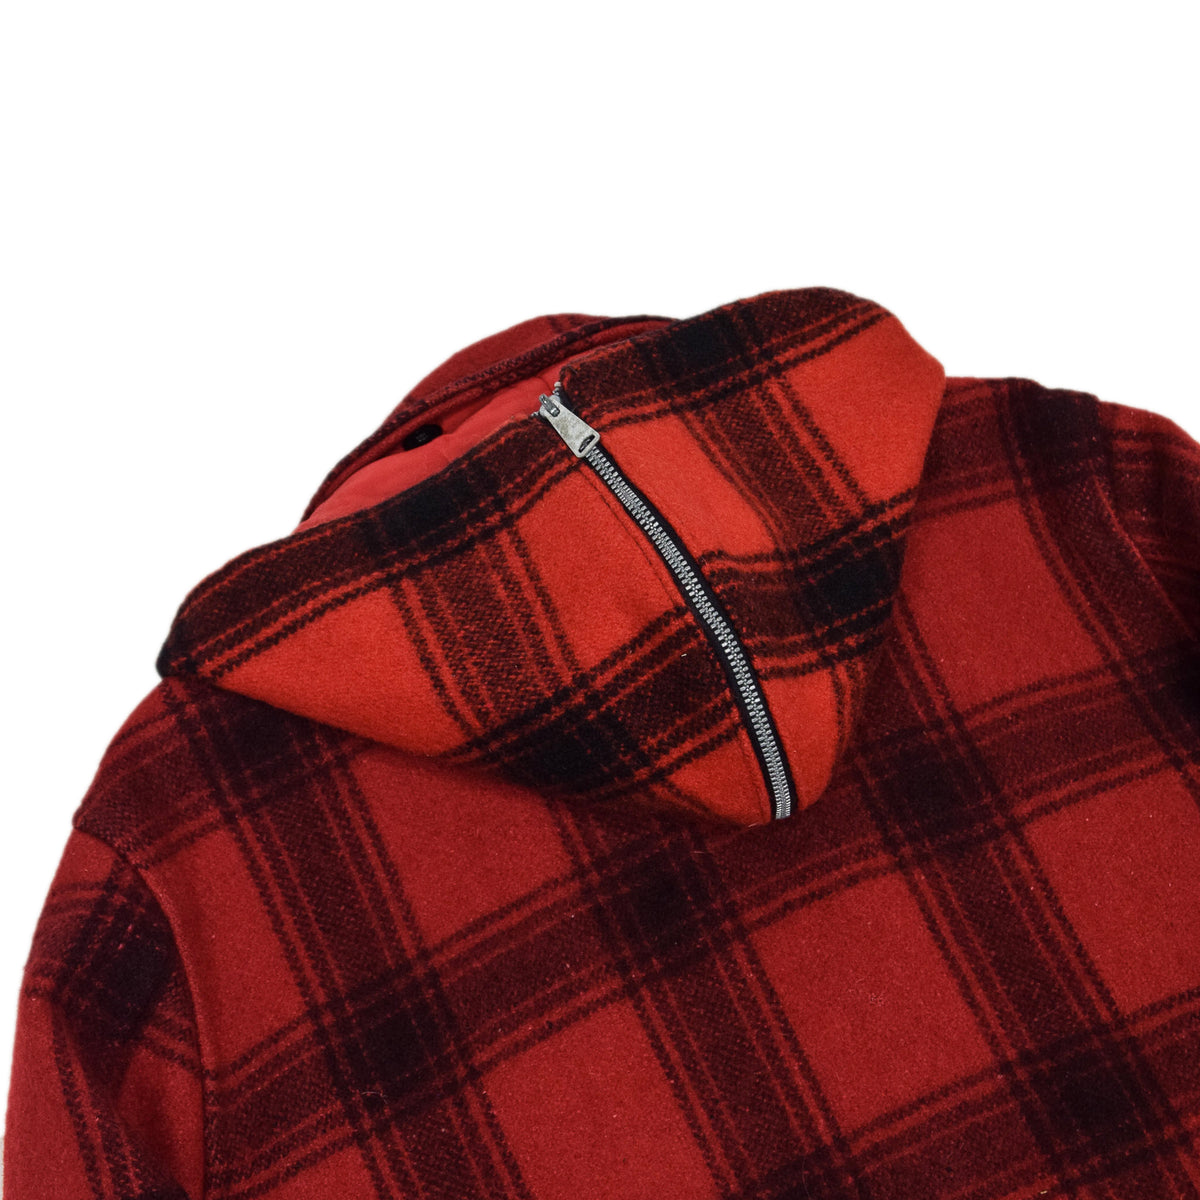 Vintage 40s 50s Penneys Foremost Wool Plaid Hunting Jacket L hood